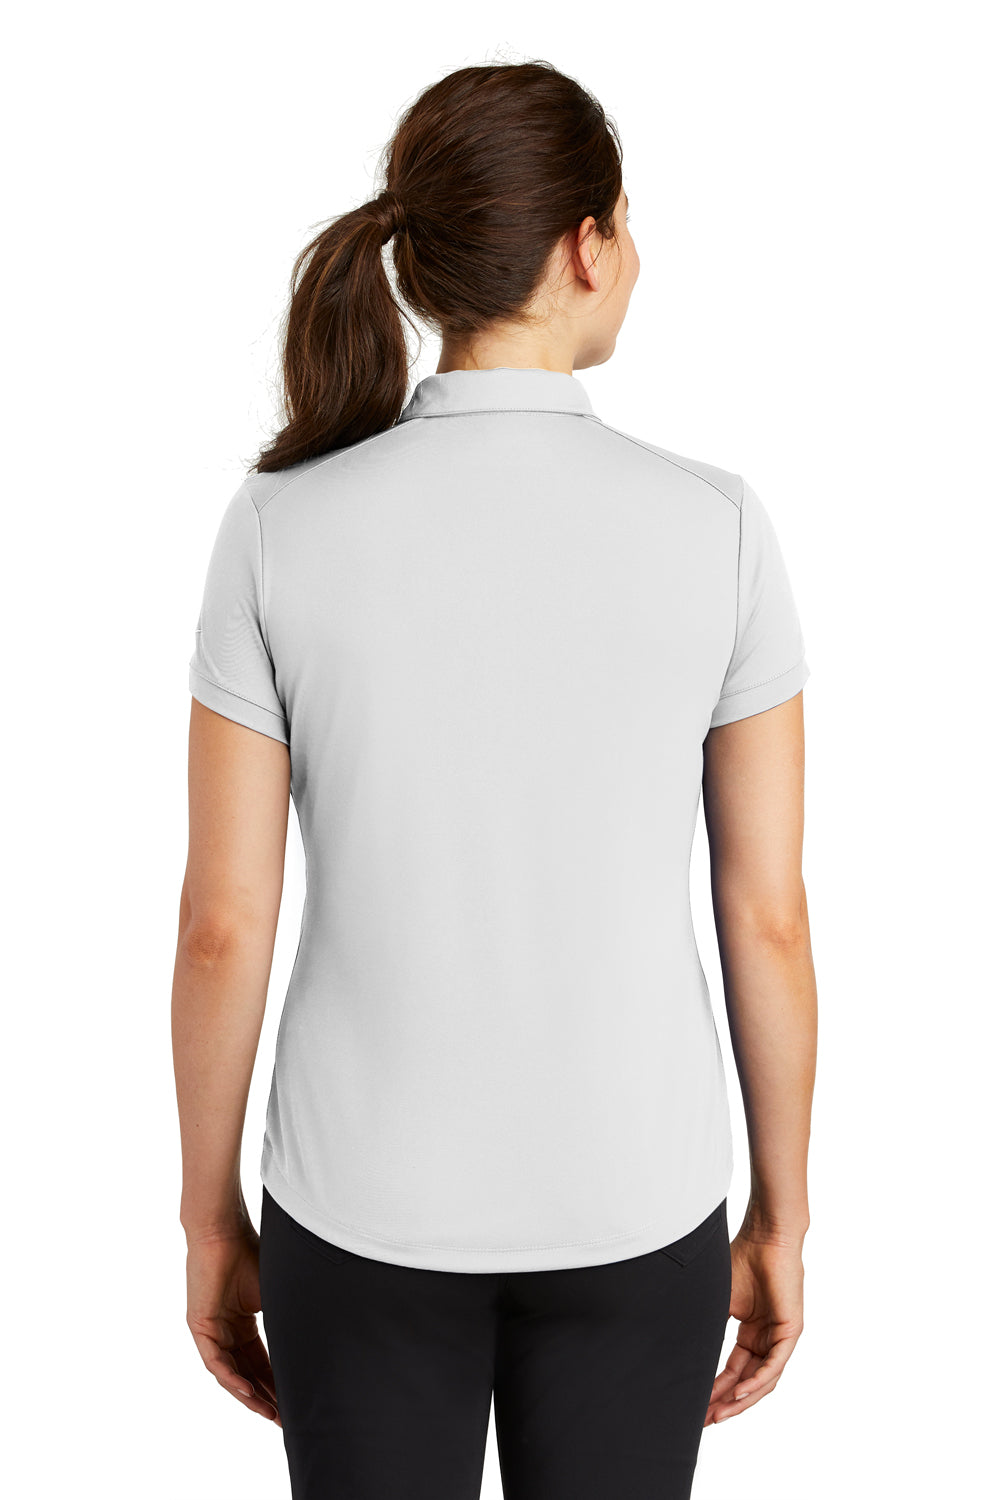 Nike 811807 Womens Players Dri-Fit Moisture Wicking Short Sleeve Polo Shirt White Back